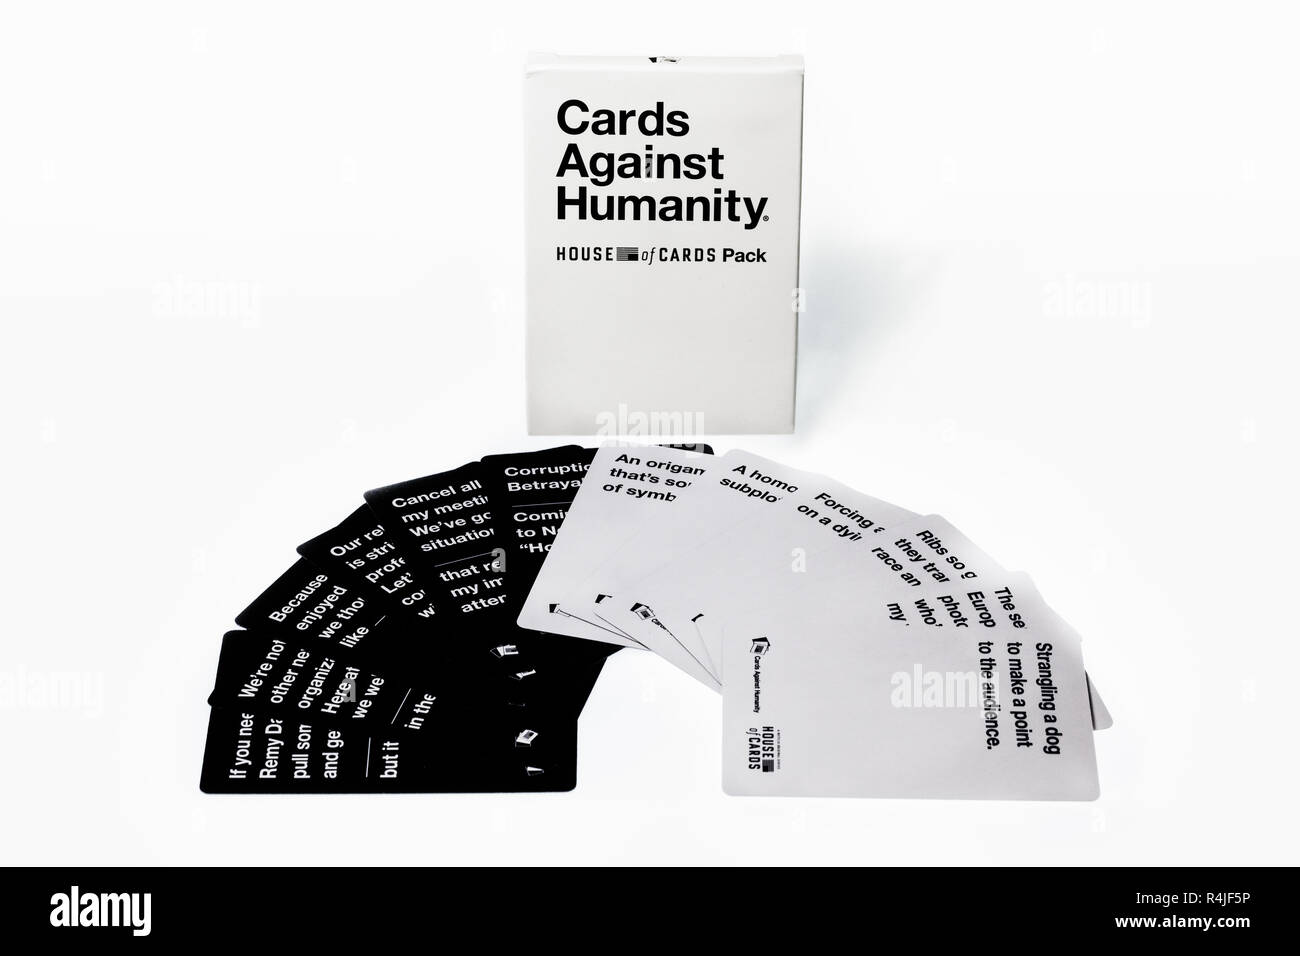 cards and box from the Cards against humanity game - Stock Image